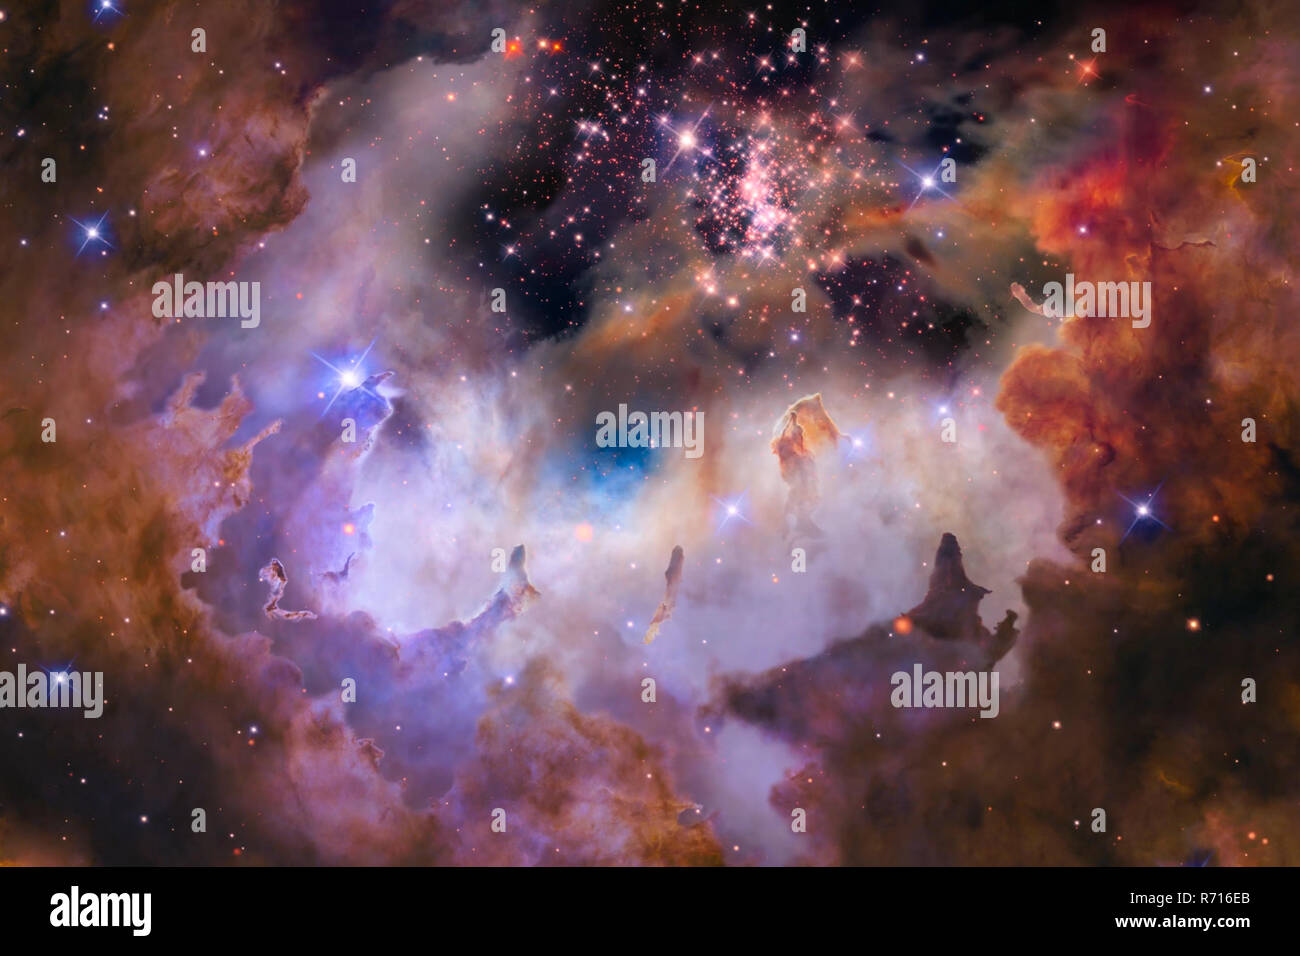 Fog in space, star dust, a space object computer animation. Stock Photo